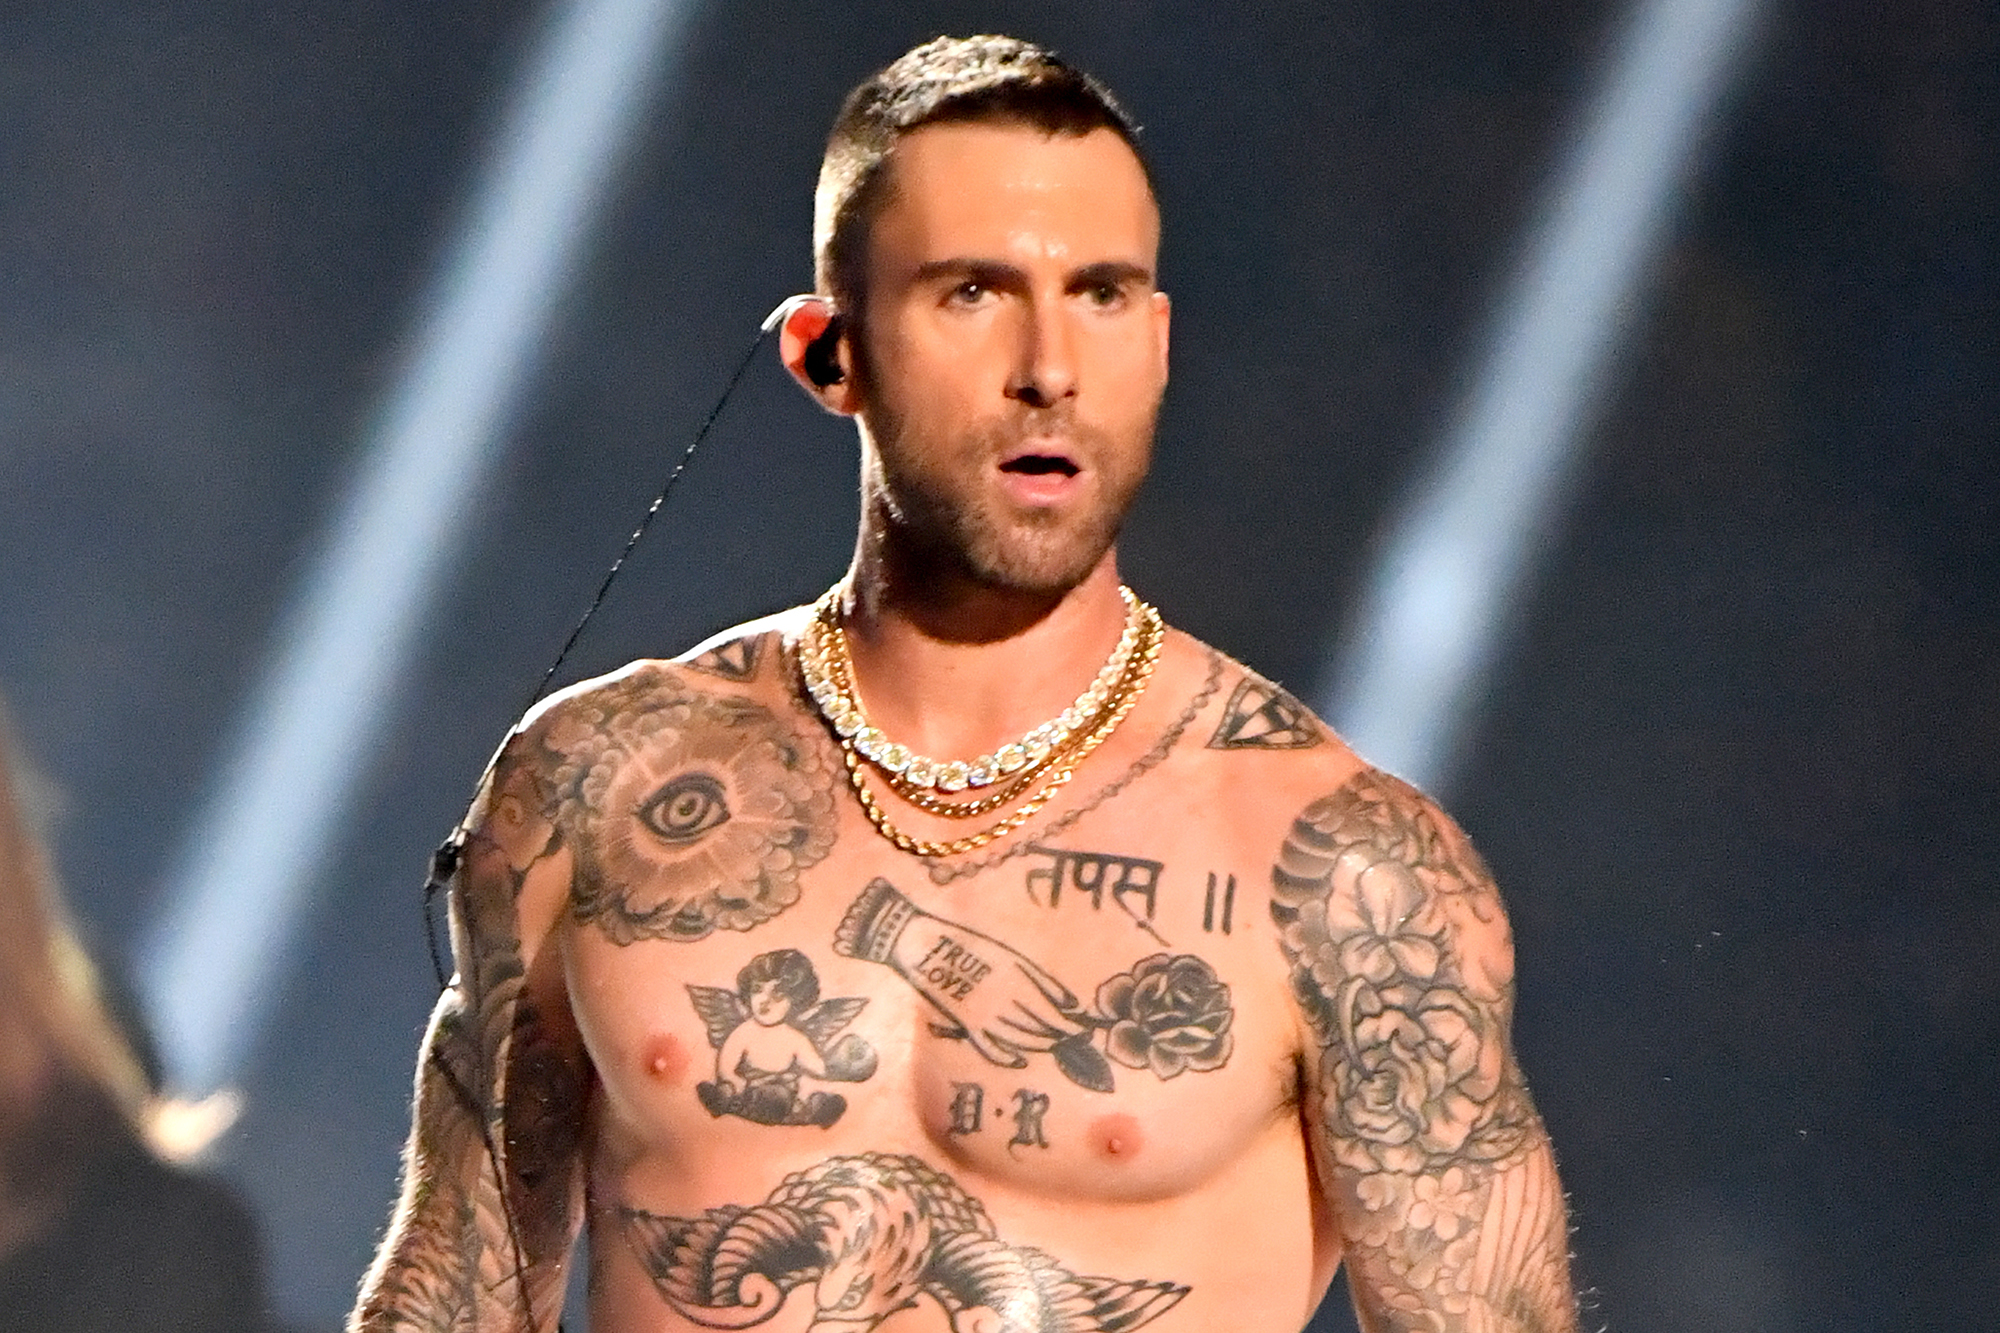 Adam Levine S New Cornrow Mohawk Sparks Outrage On Twitter